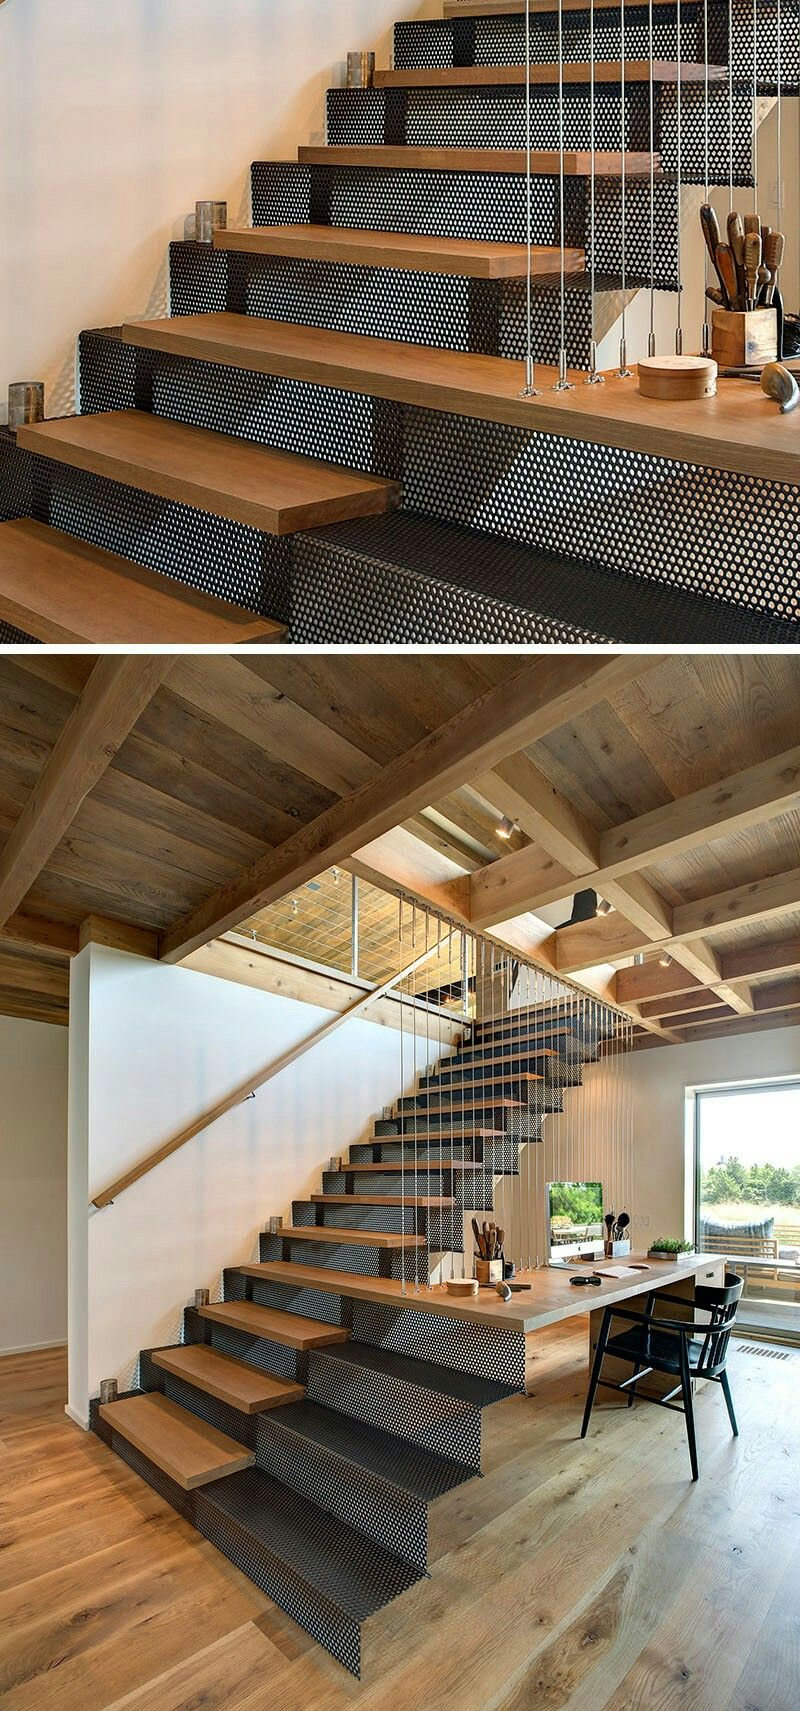 Not stairs to a bench but a desk. Just thought it was kinda neat